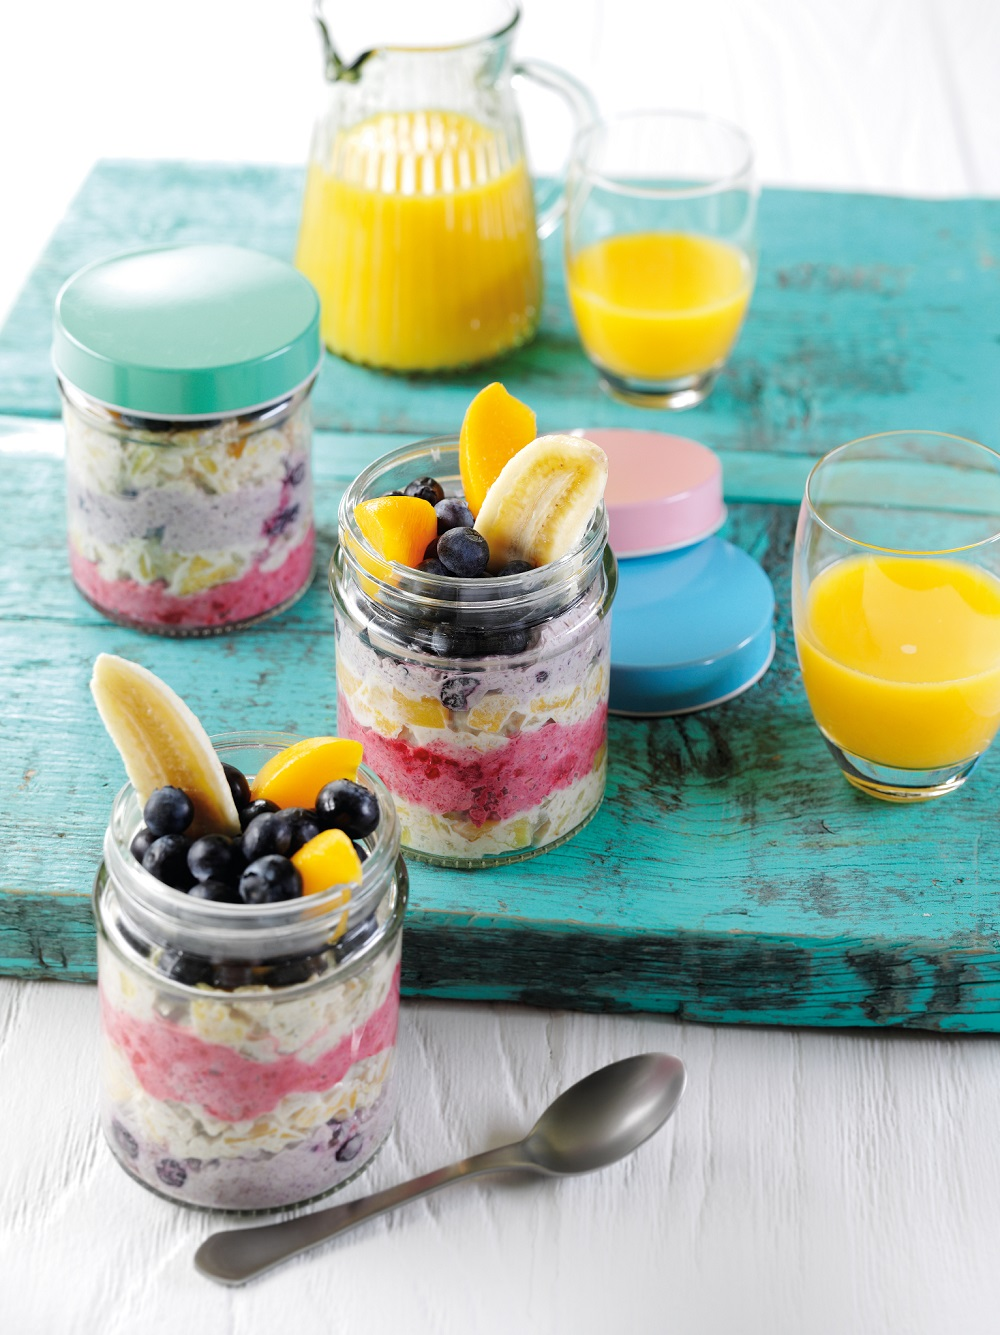 5 Easy Fruity Recipes To Make Up With The Kids